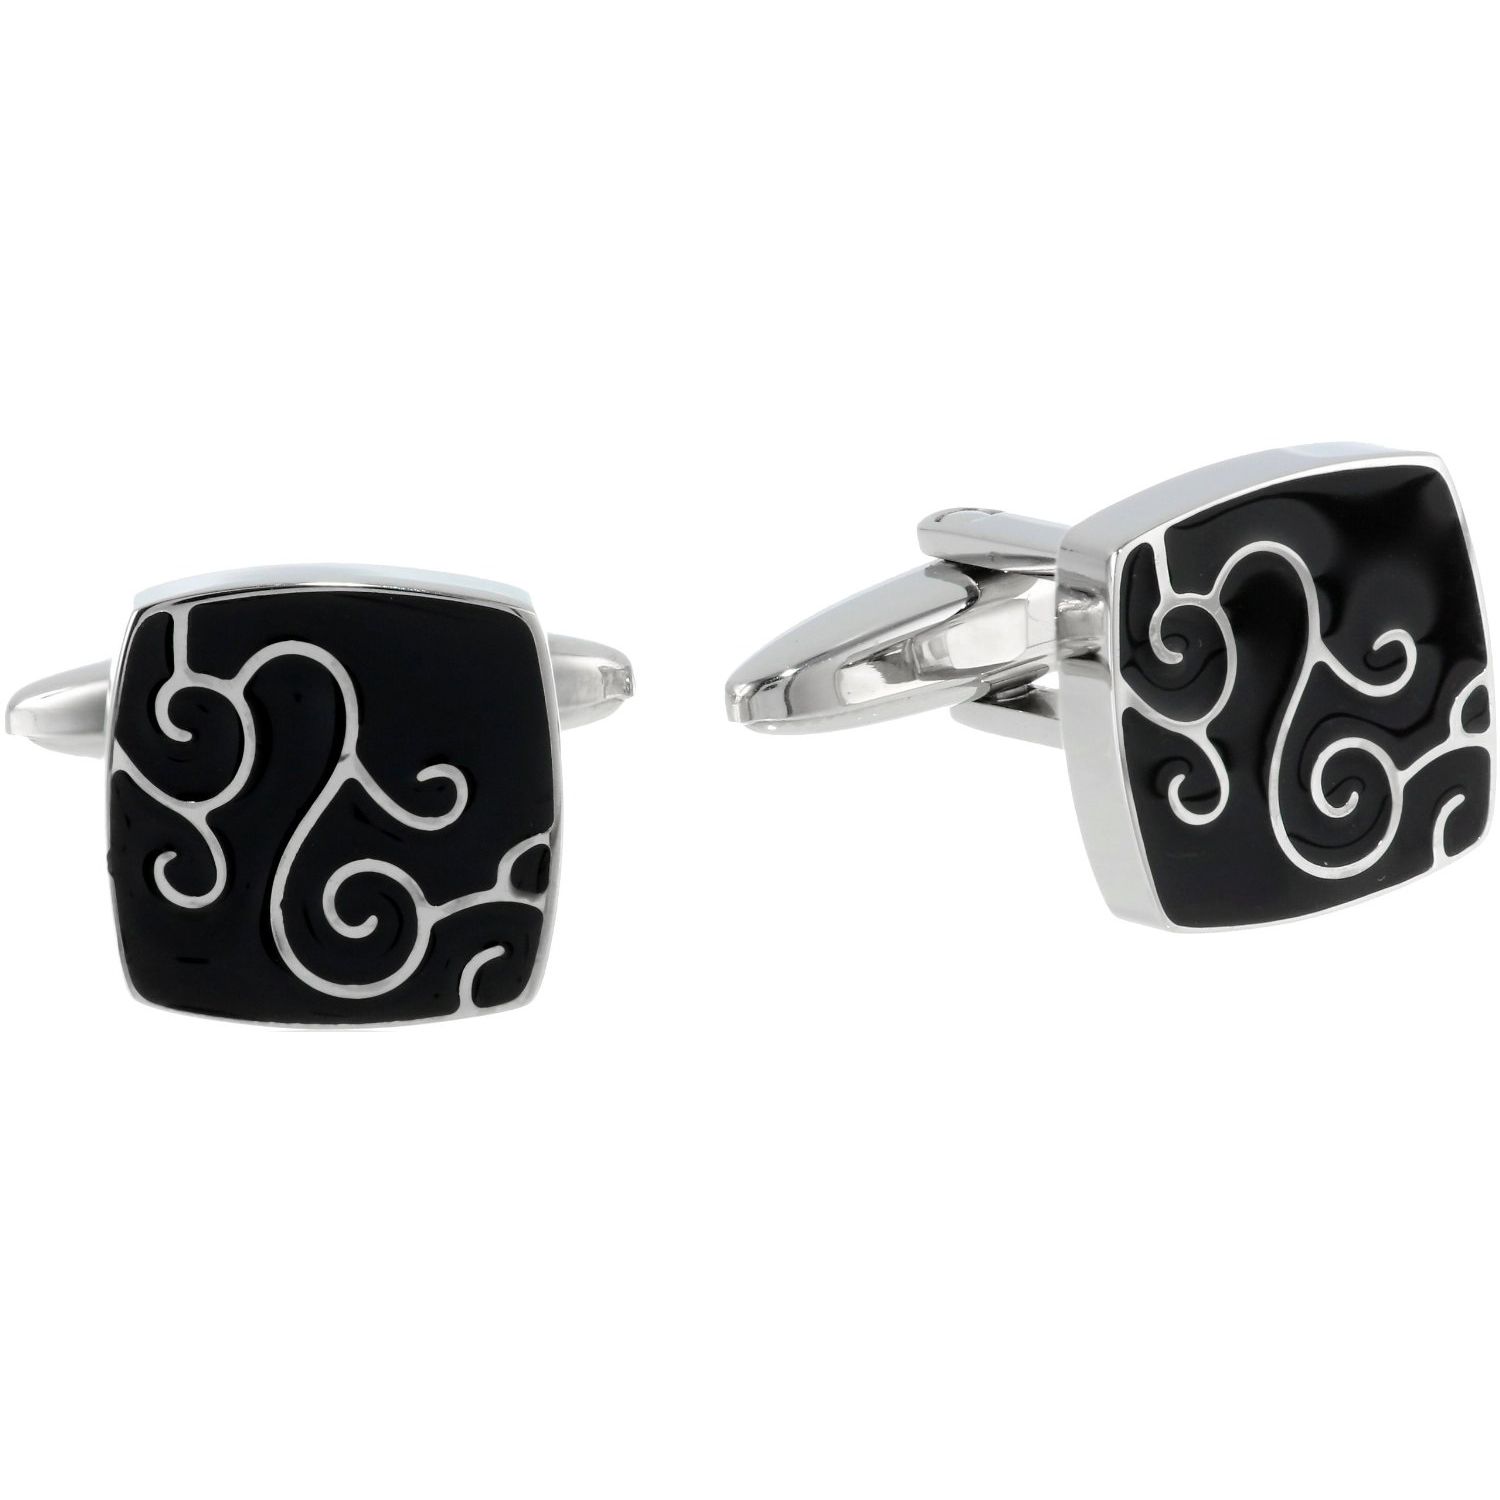 Stainless Steel Cufflinks Black IP Accent and Filigree Design